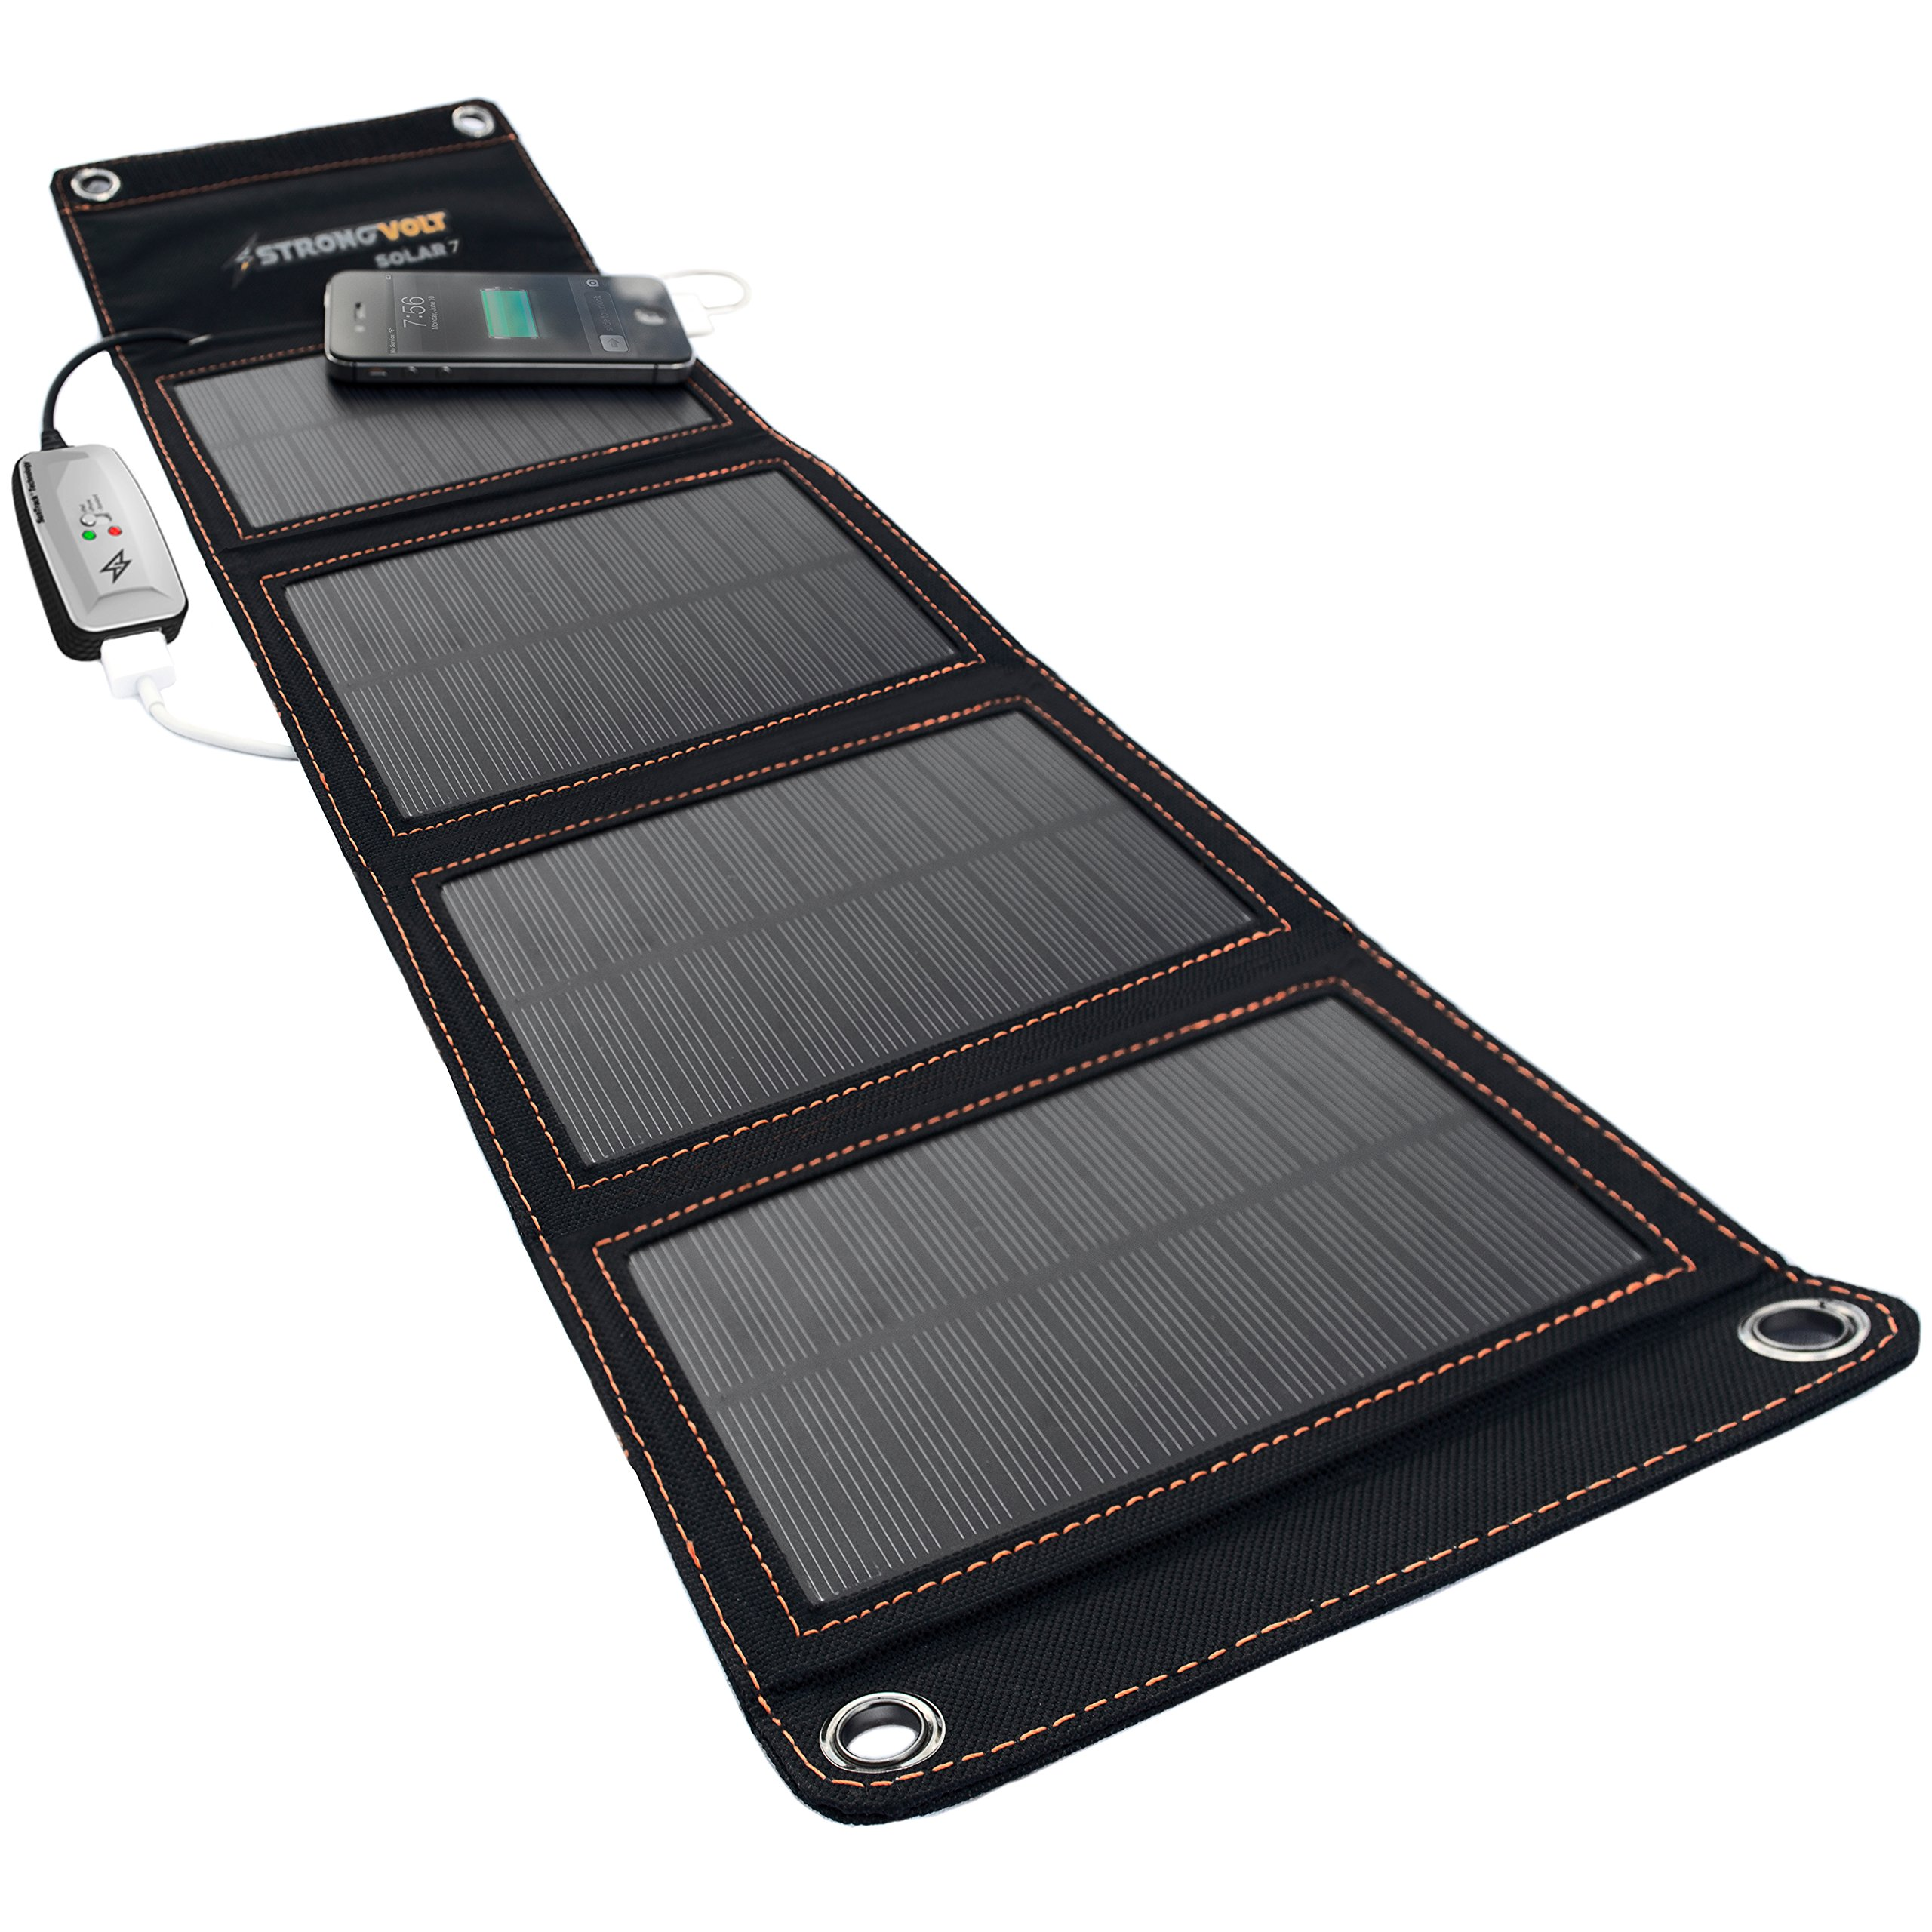 StrongVolt Portable Solar Charger with SunTrack Technology - 7 Watts